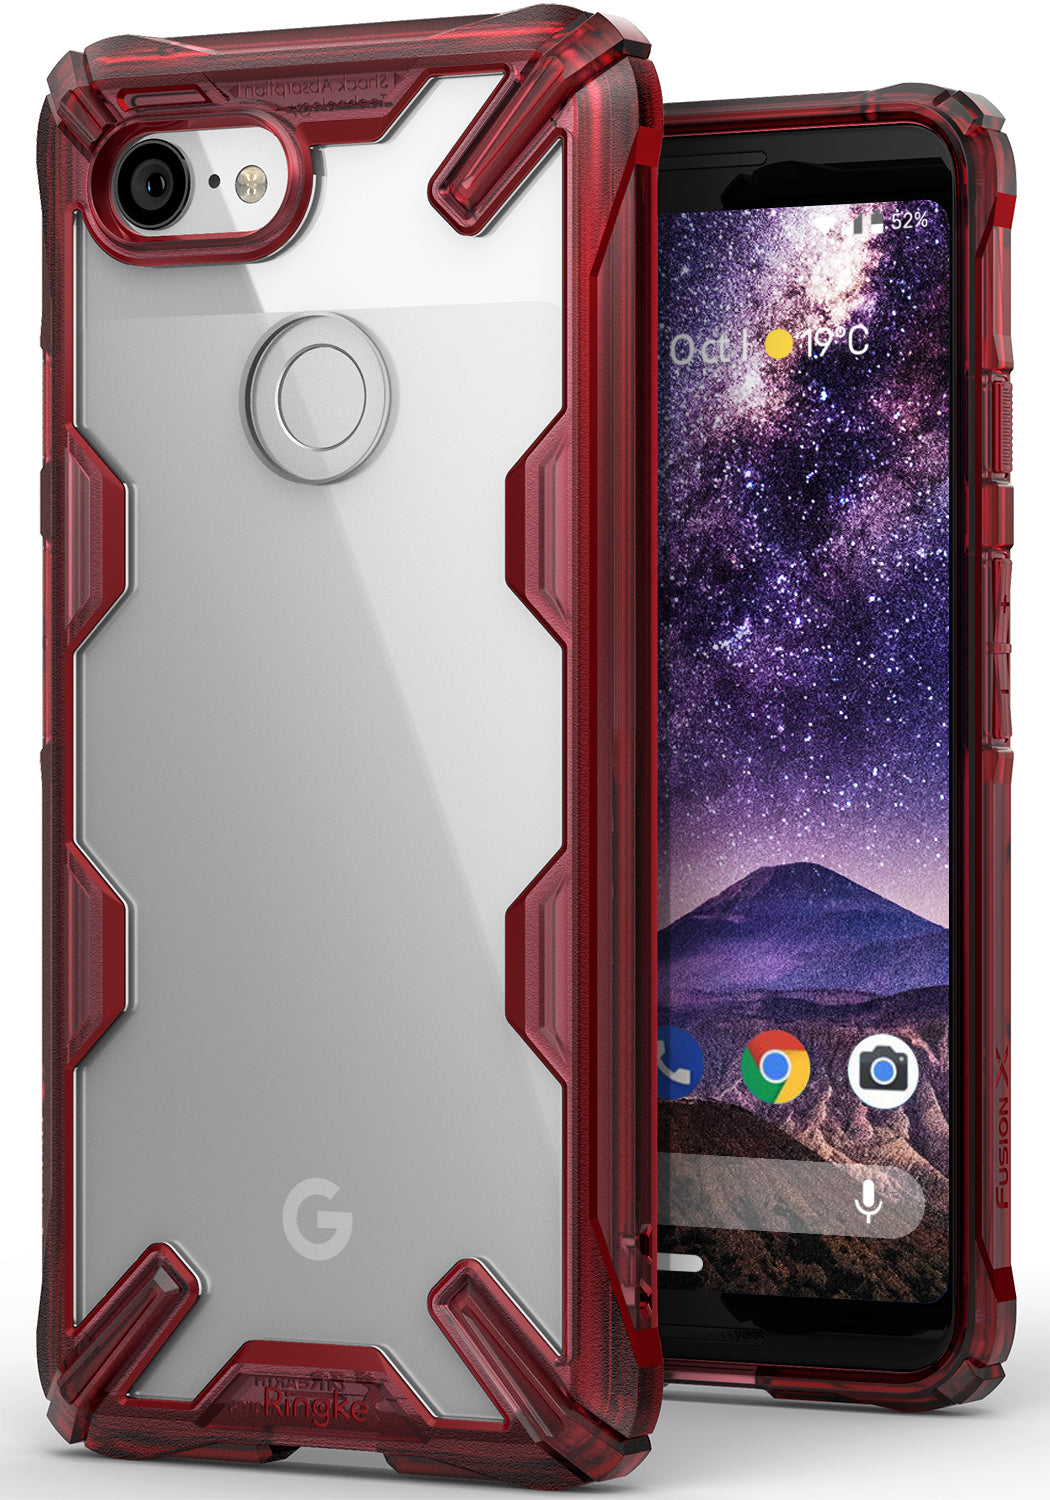 ringke fusion-x rugged heavy duty clear back case cover for google pixel 3 main ruby red